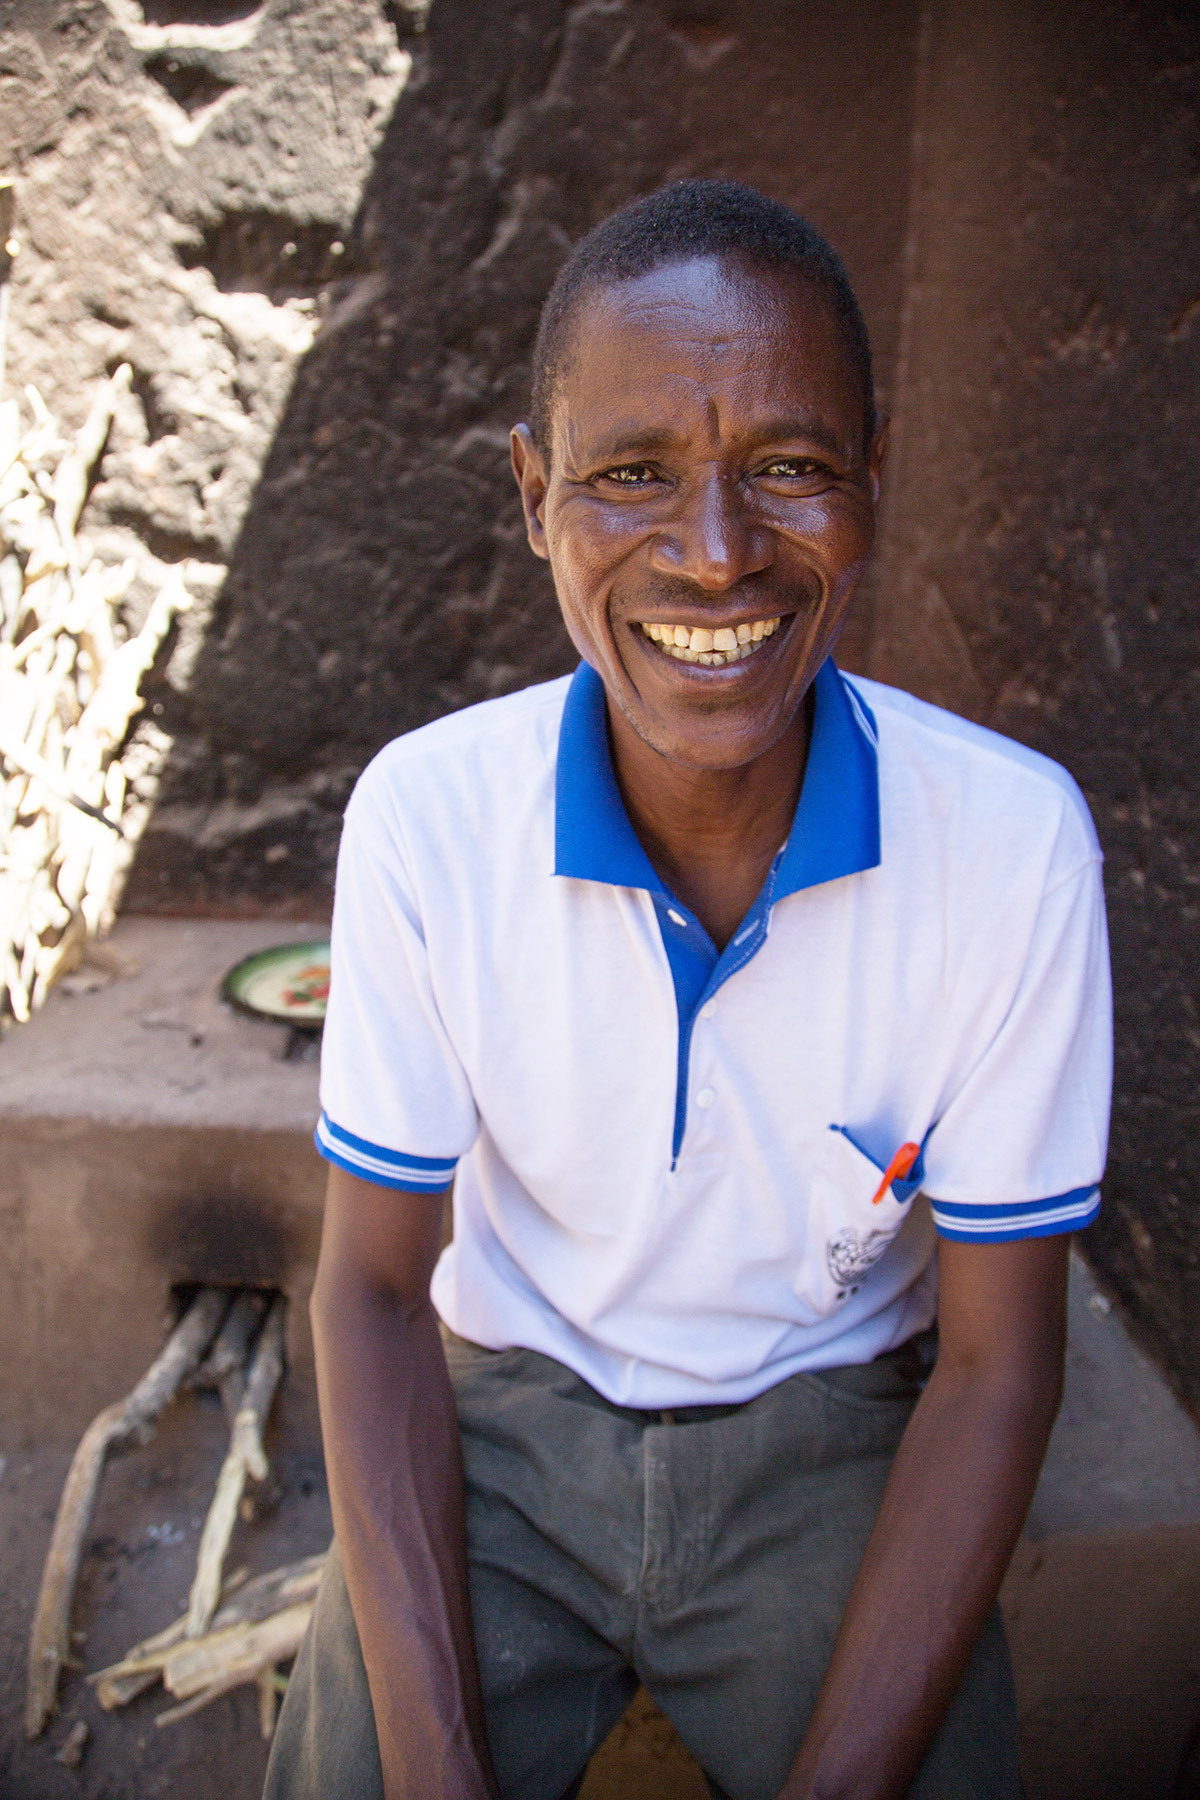 Socha sits smiling on the improved stove he built for Stella.